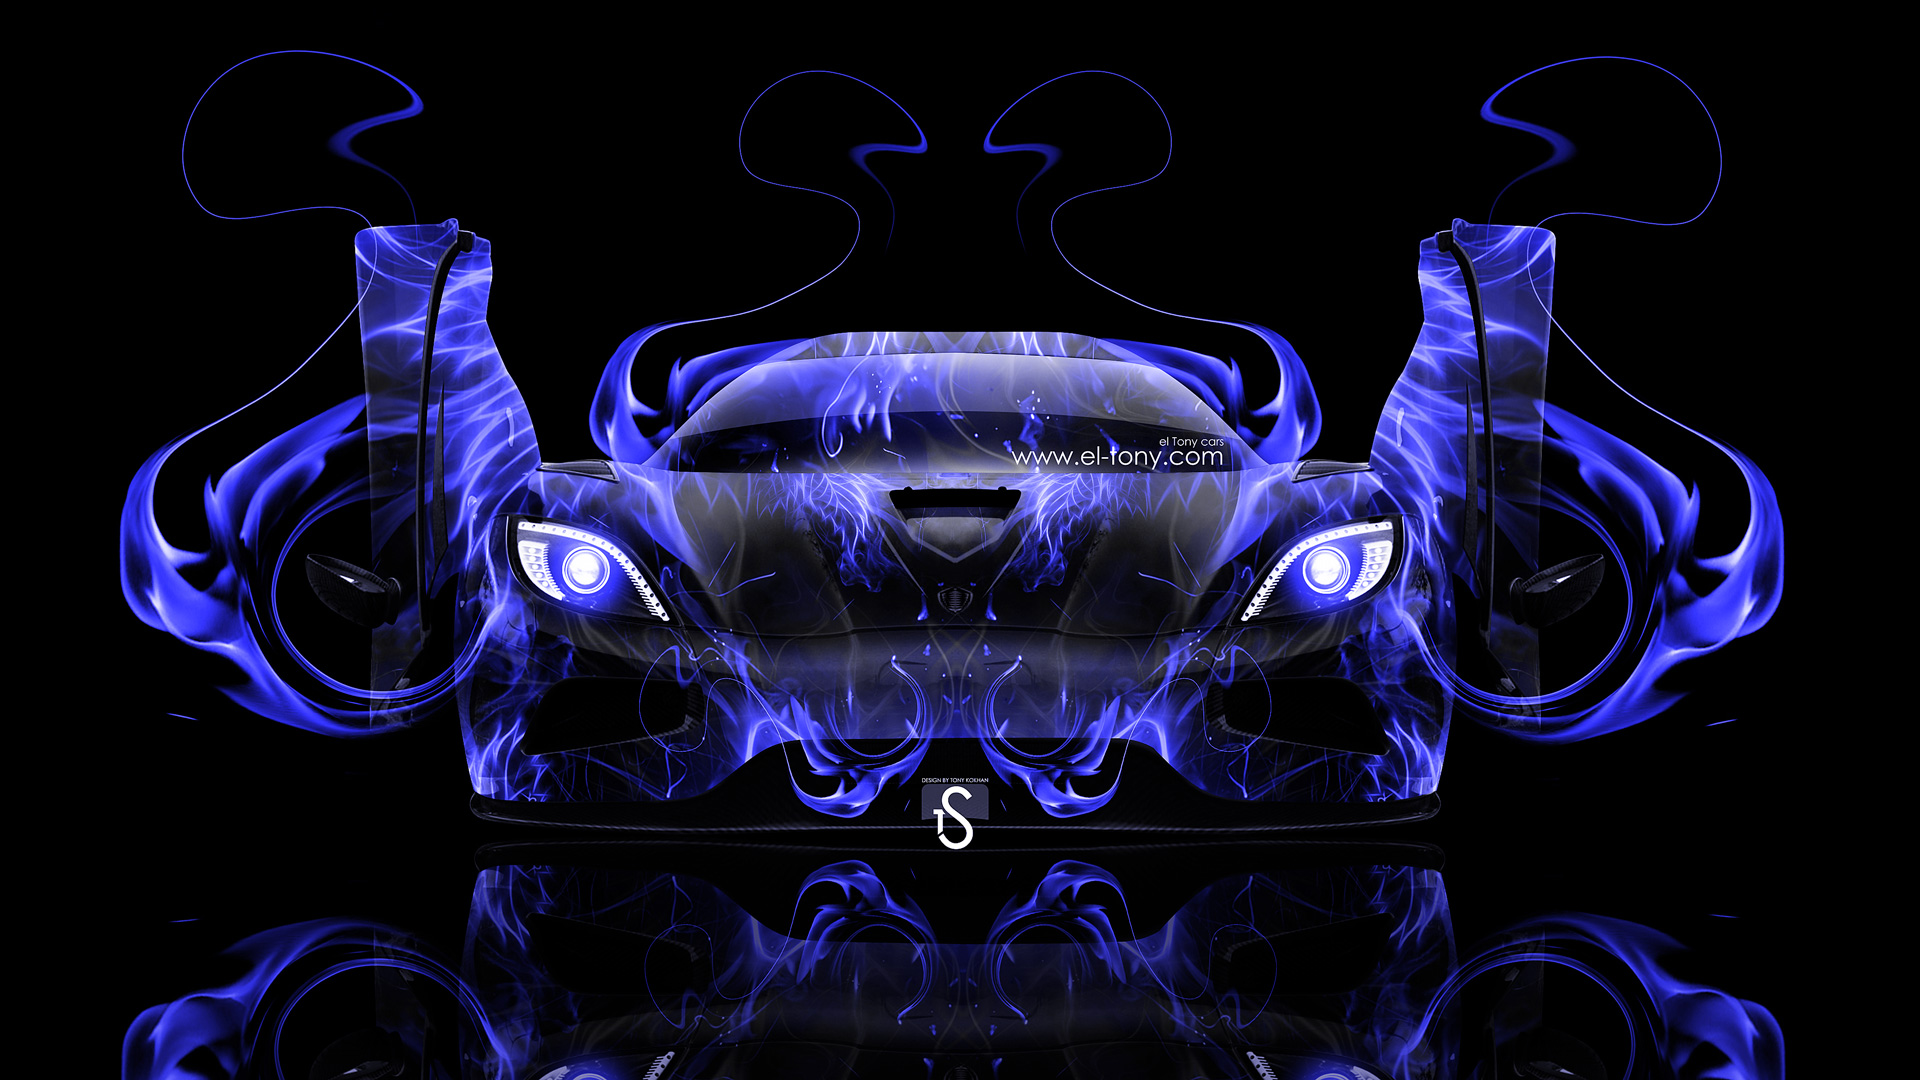 Merveilleux ... Koenigsegg Agera Open Doors Blue Fire Abstract Car  ...